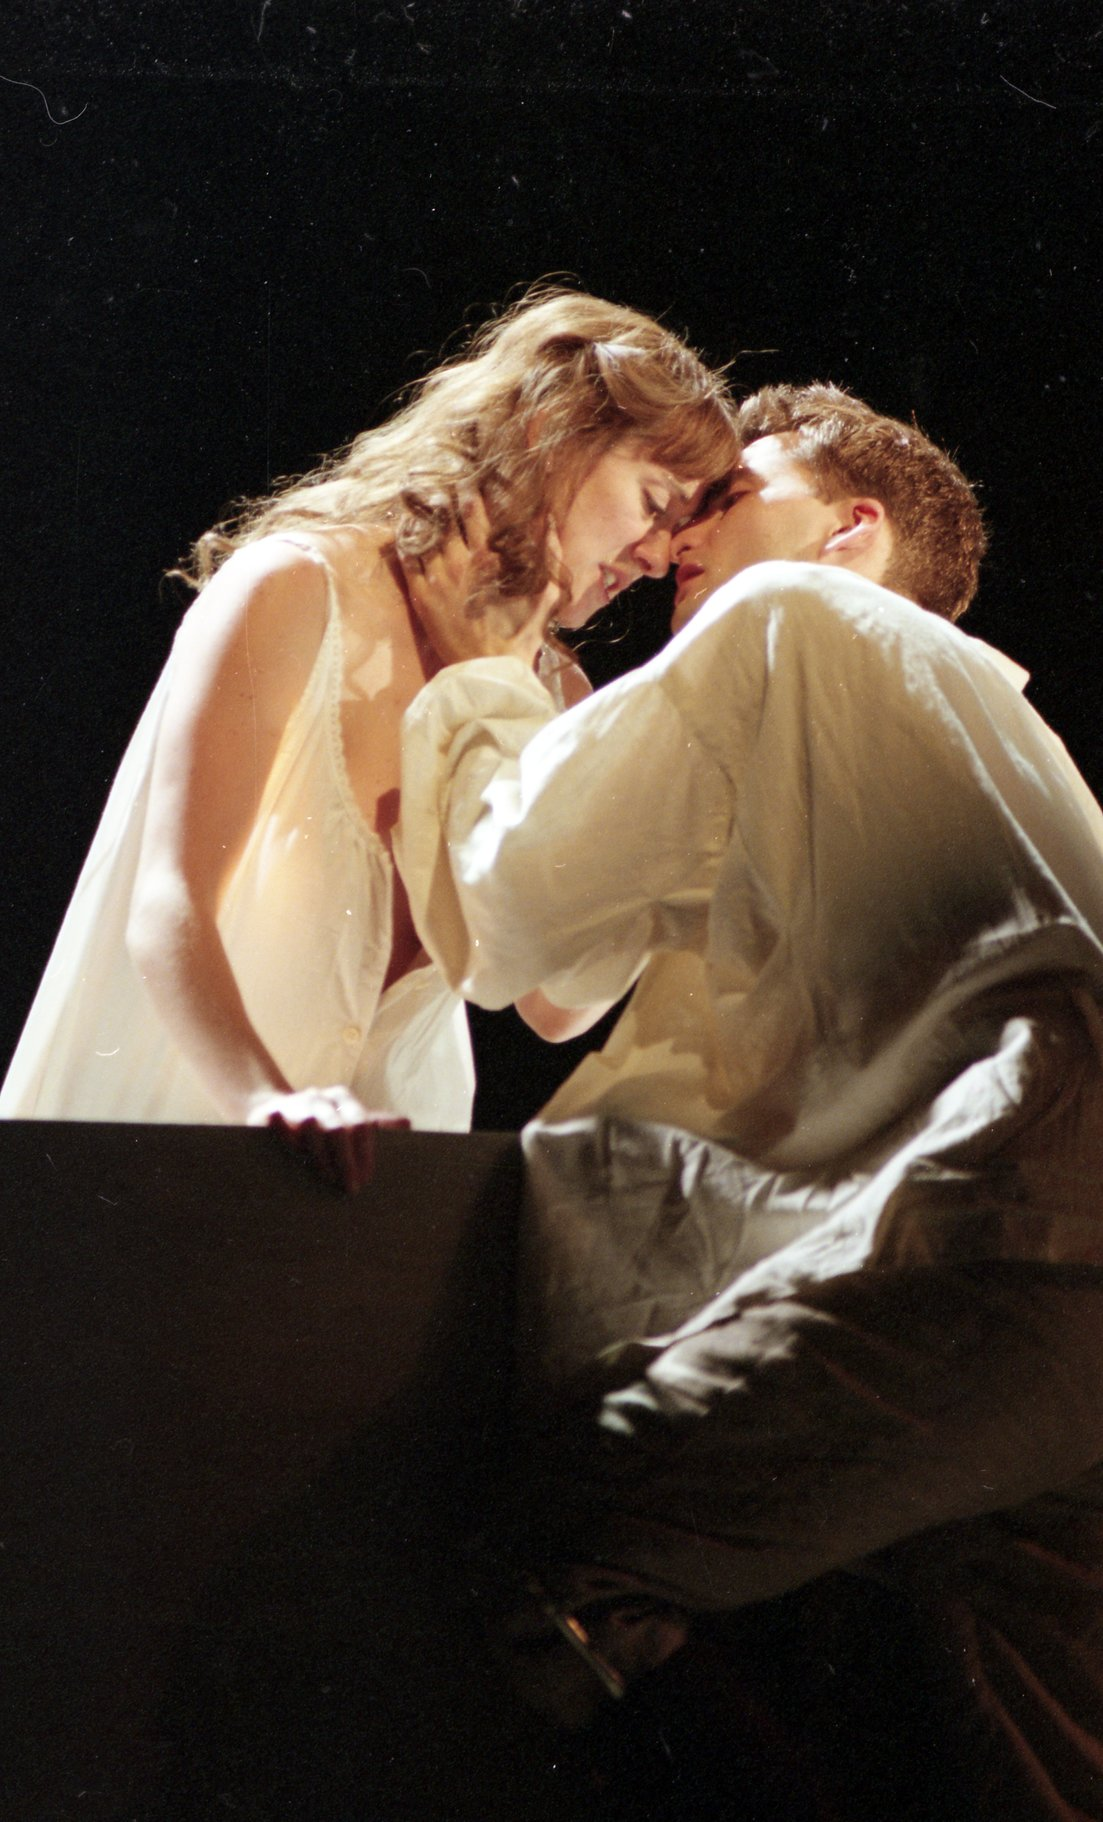 Romeo and Juliet kiss before parting.